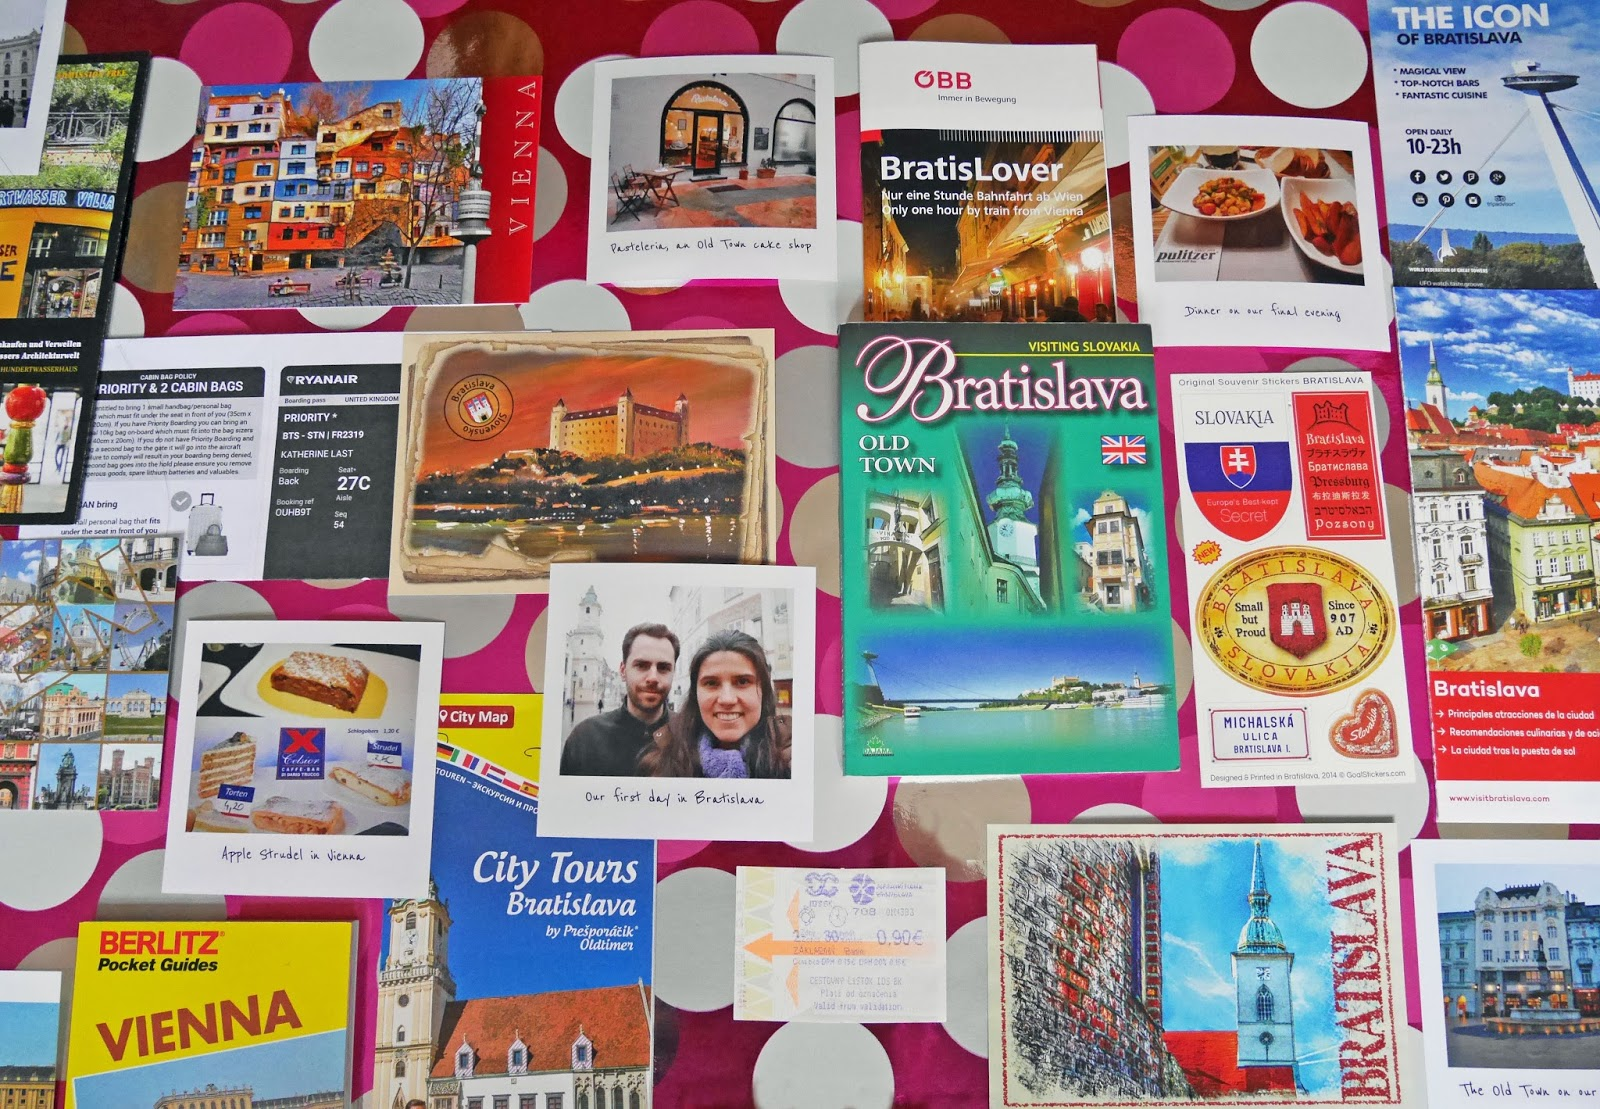 Photos, postcards, leaflets and stickers from Bratislava, Slovakia